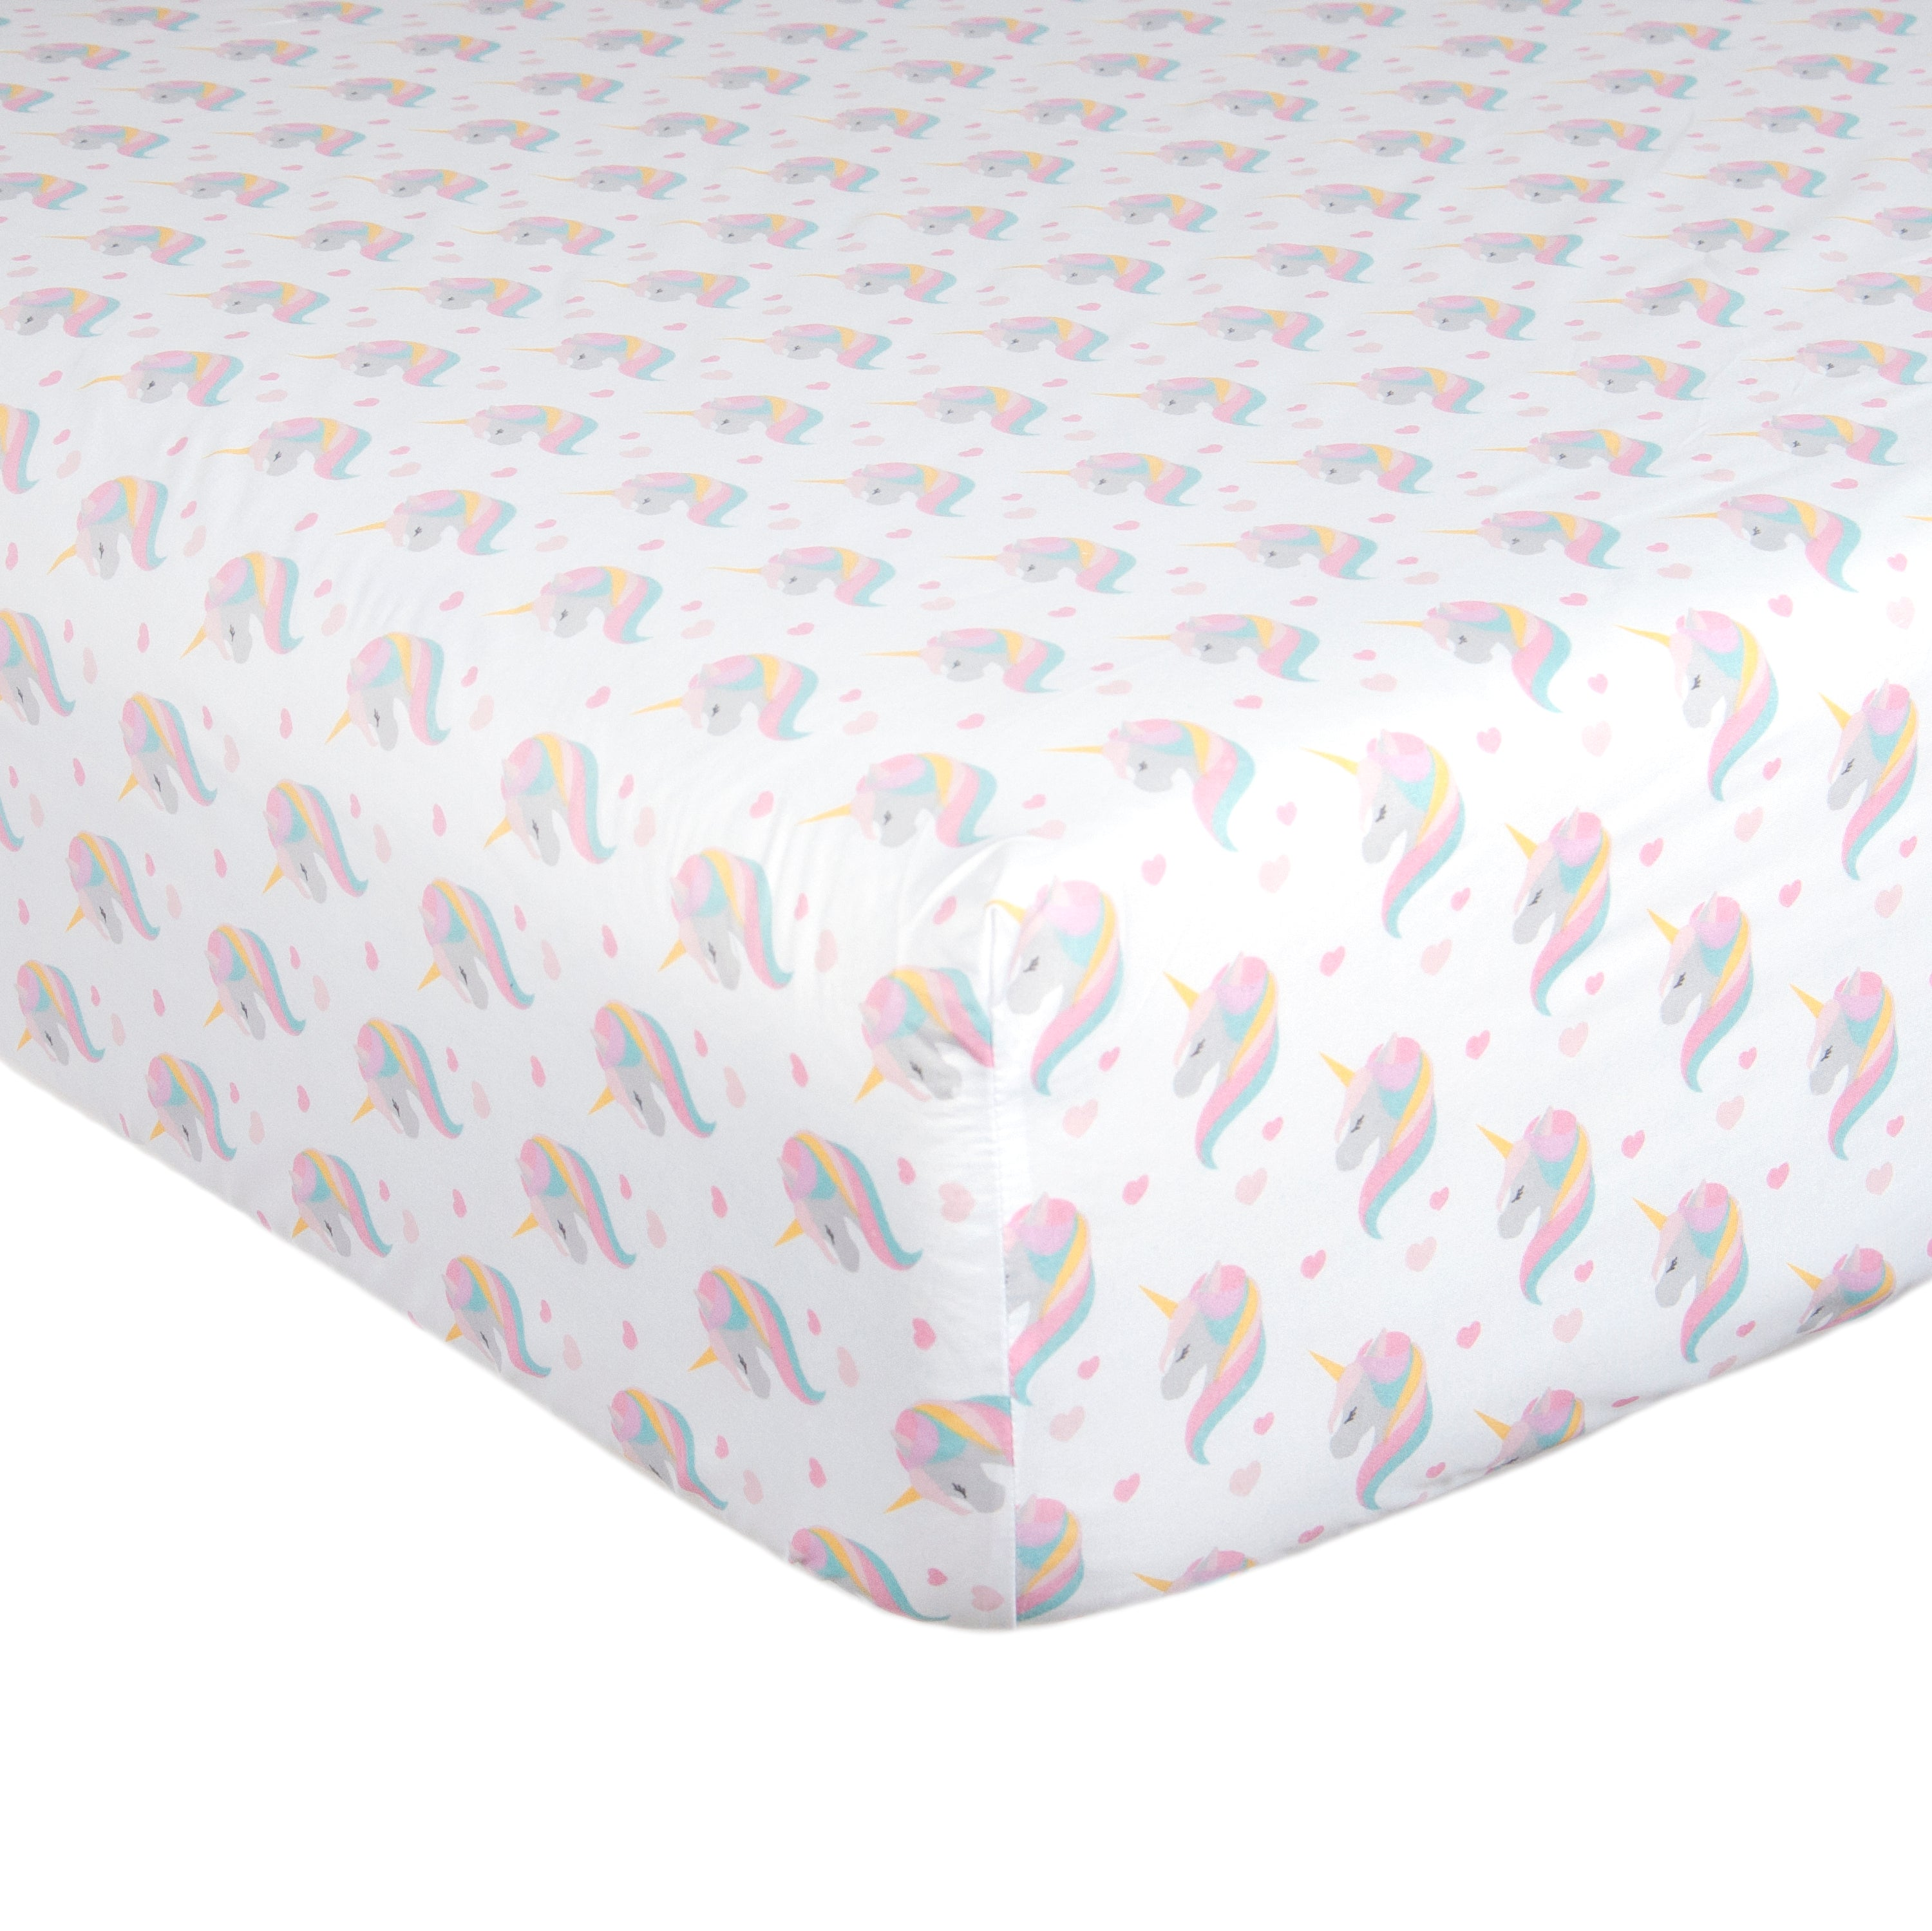 Sheet Set Rainbow Unicorn, Twin & Full/Queen